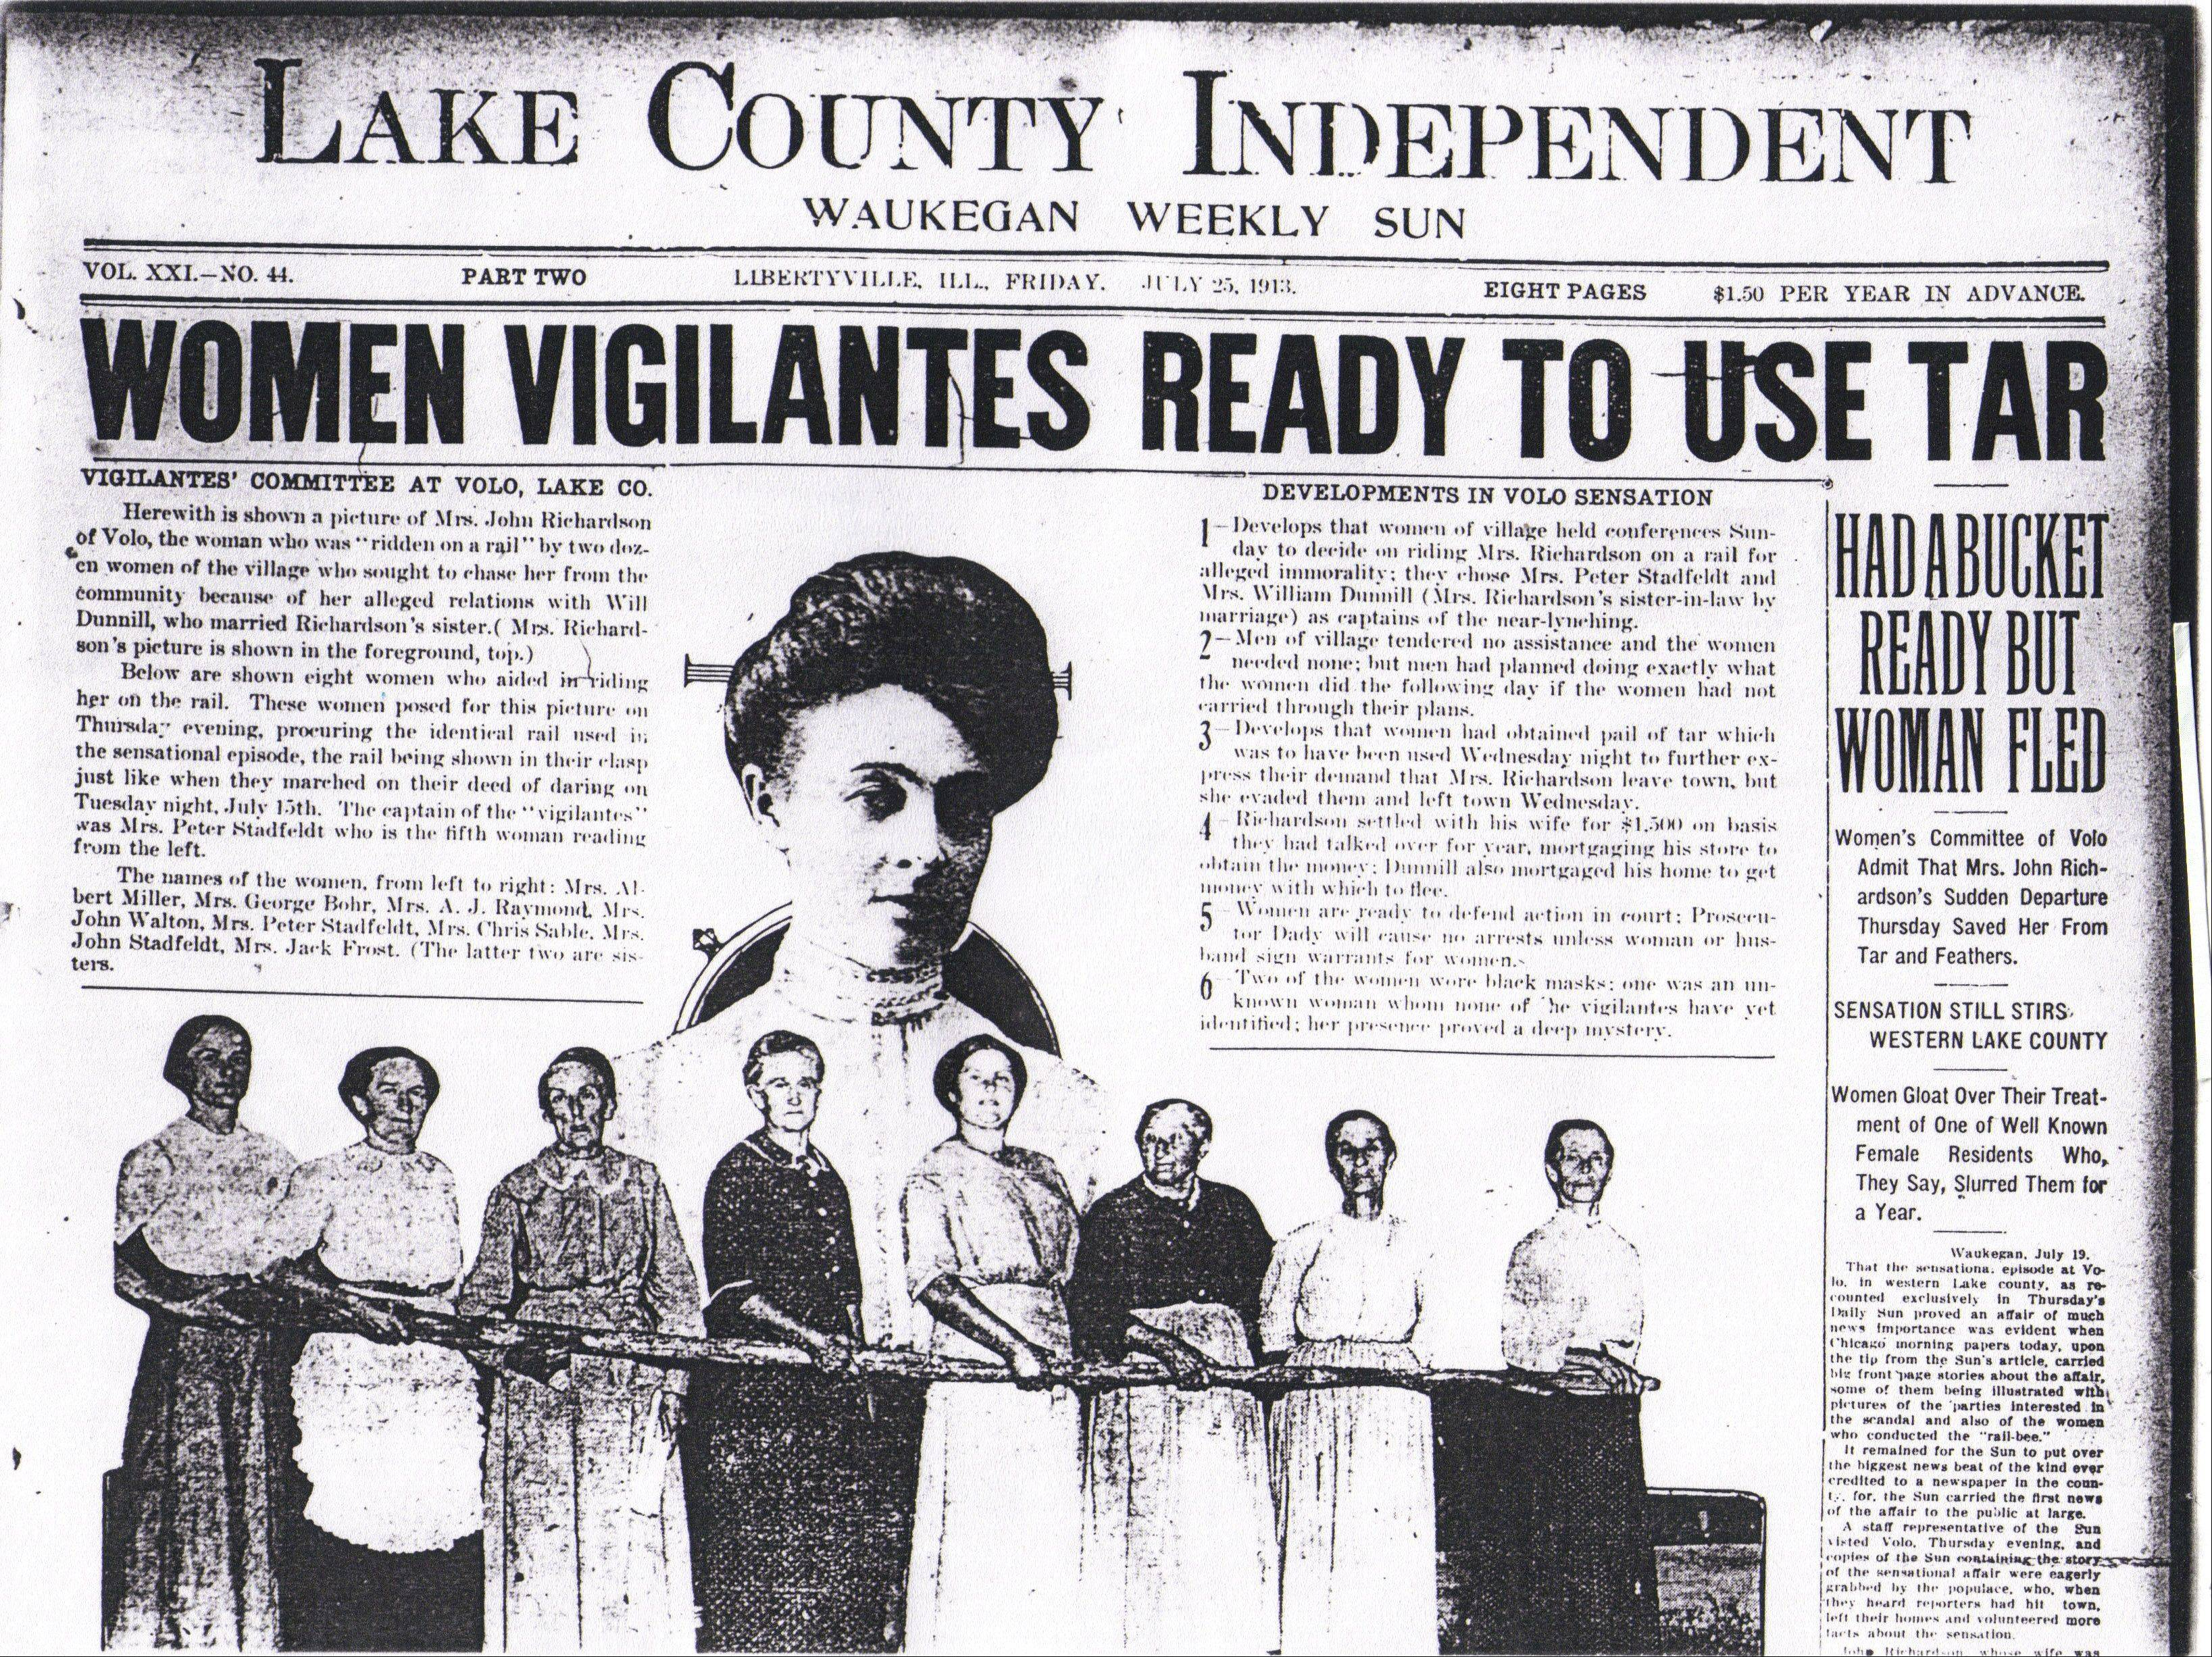 A 1913 edition of the Lake County Independent showcases the Volo vigilante event.